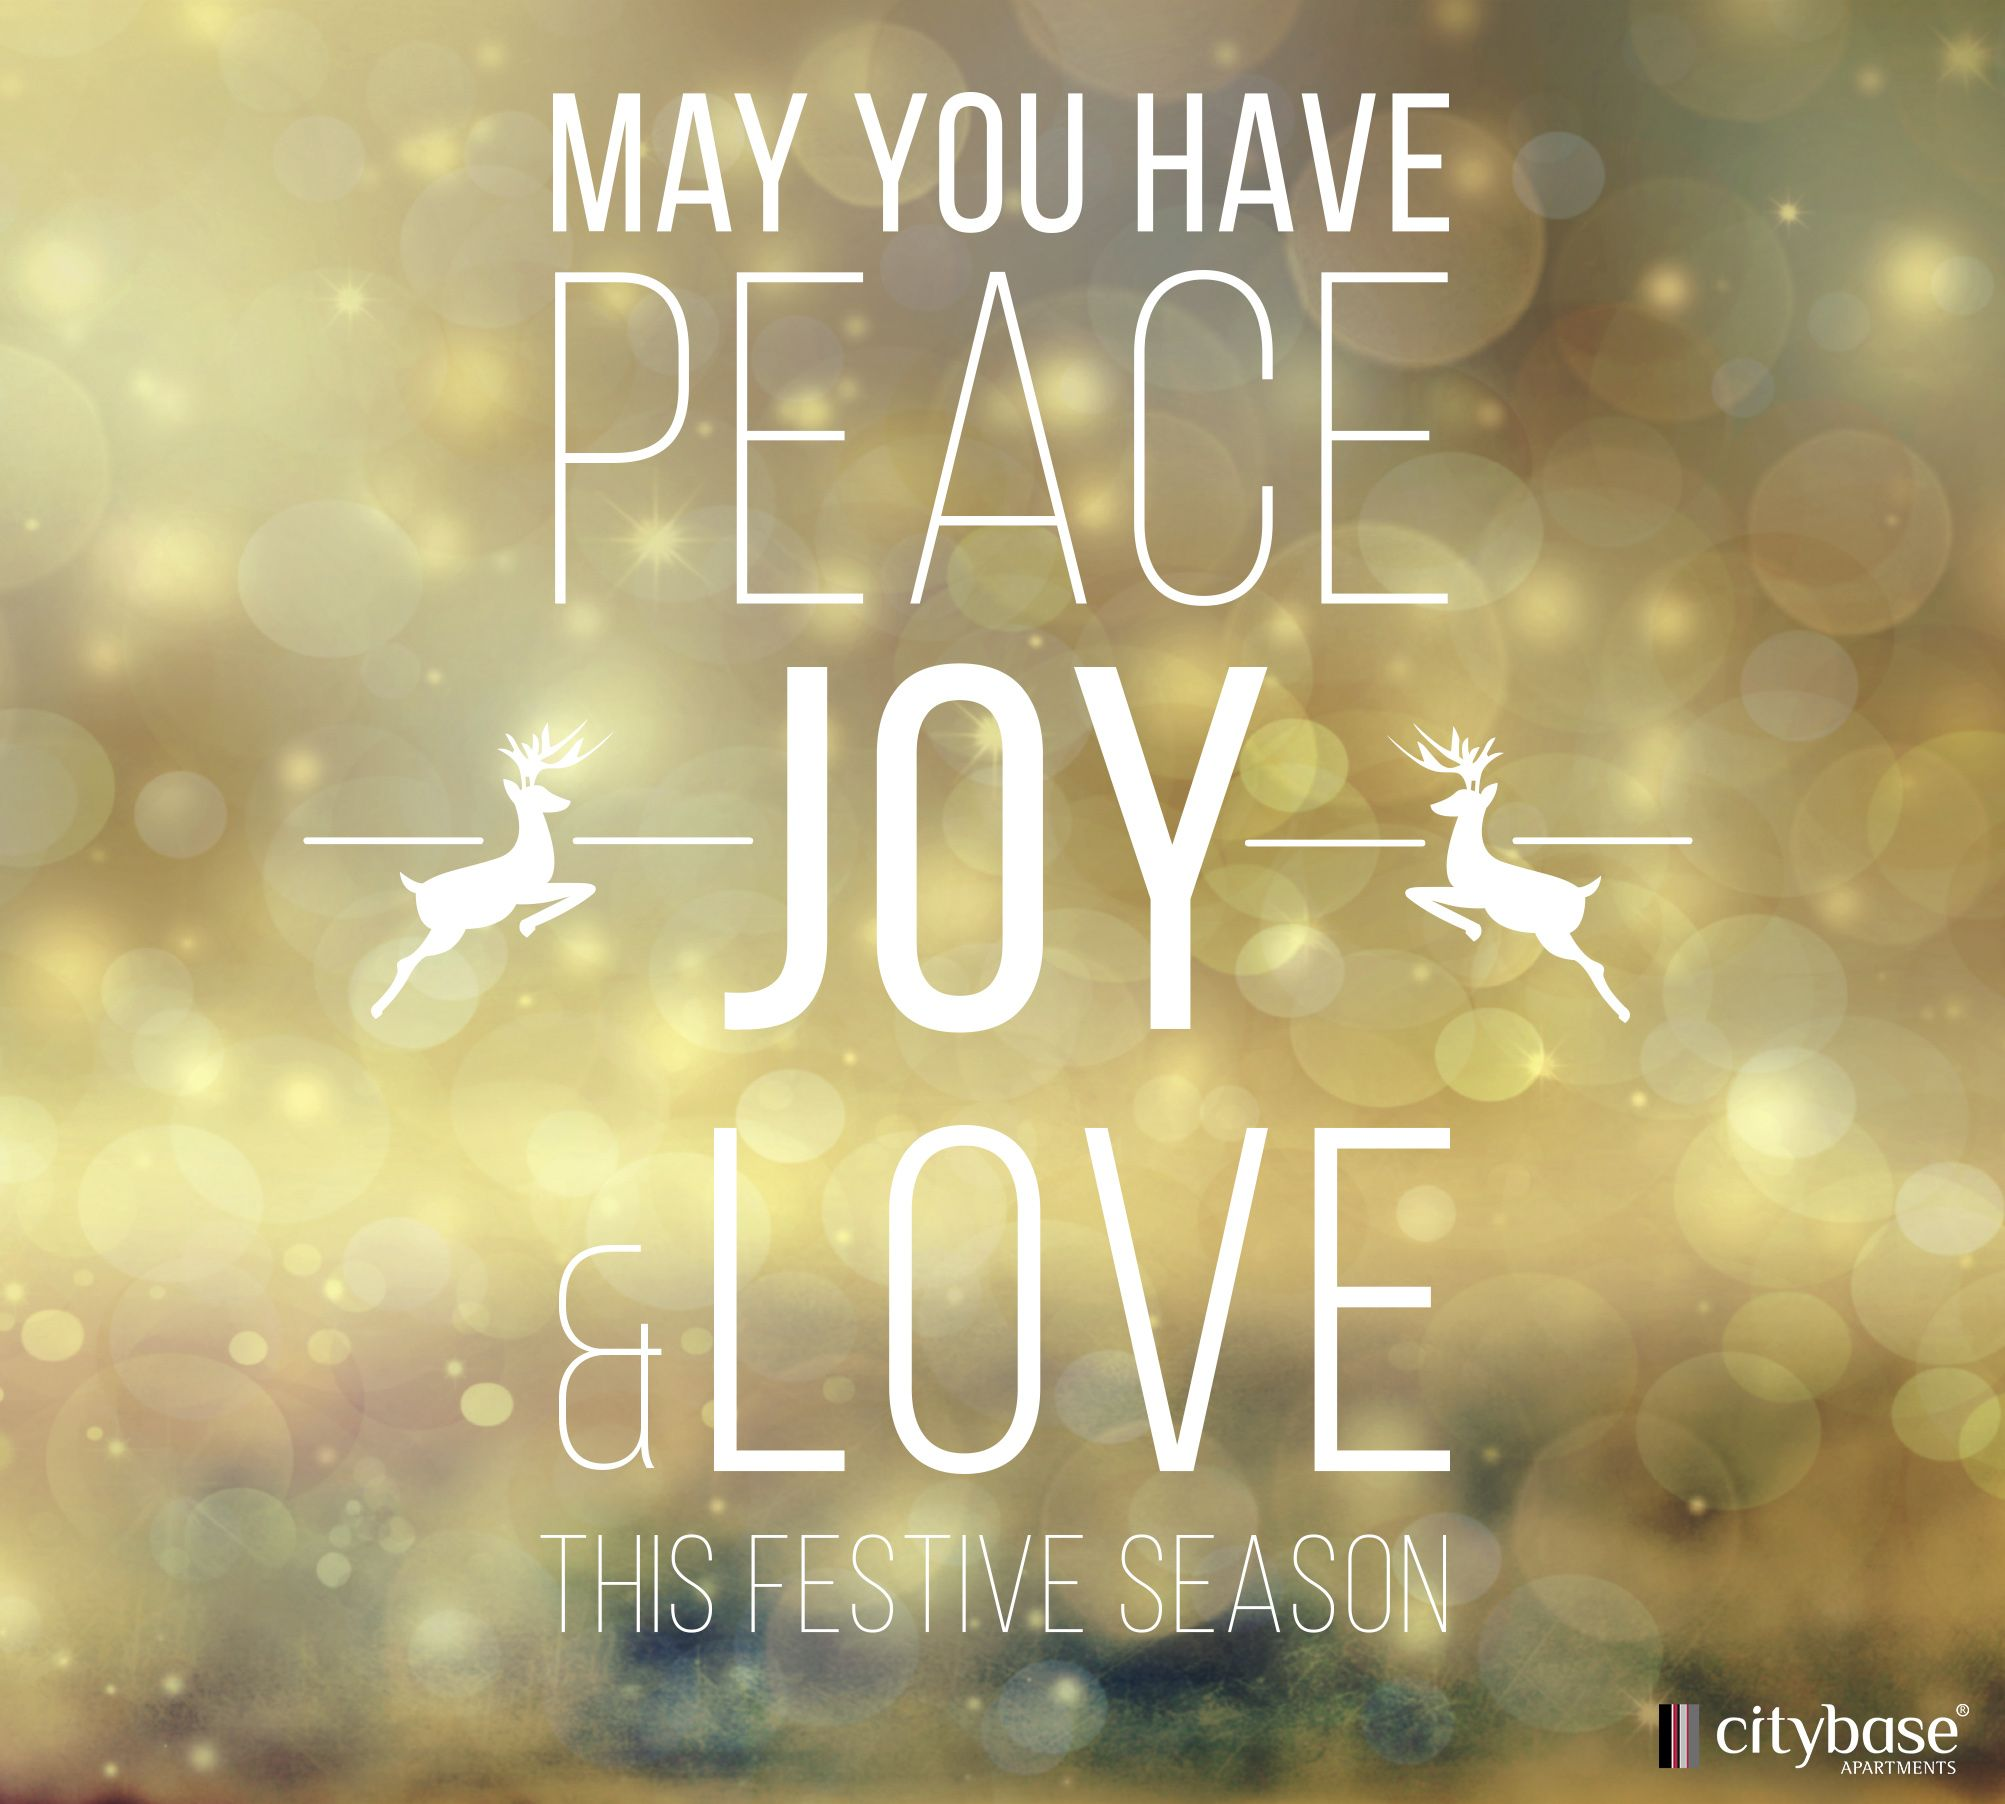 Peace And Joy Quotes: May You Have Peace, Joy And Love This Festive Season